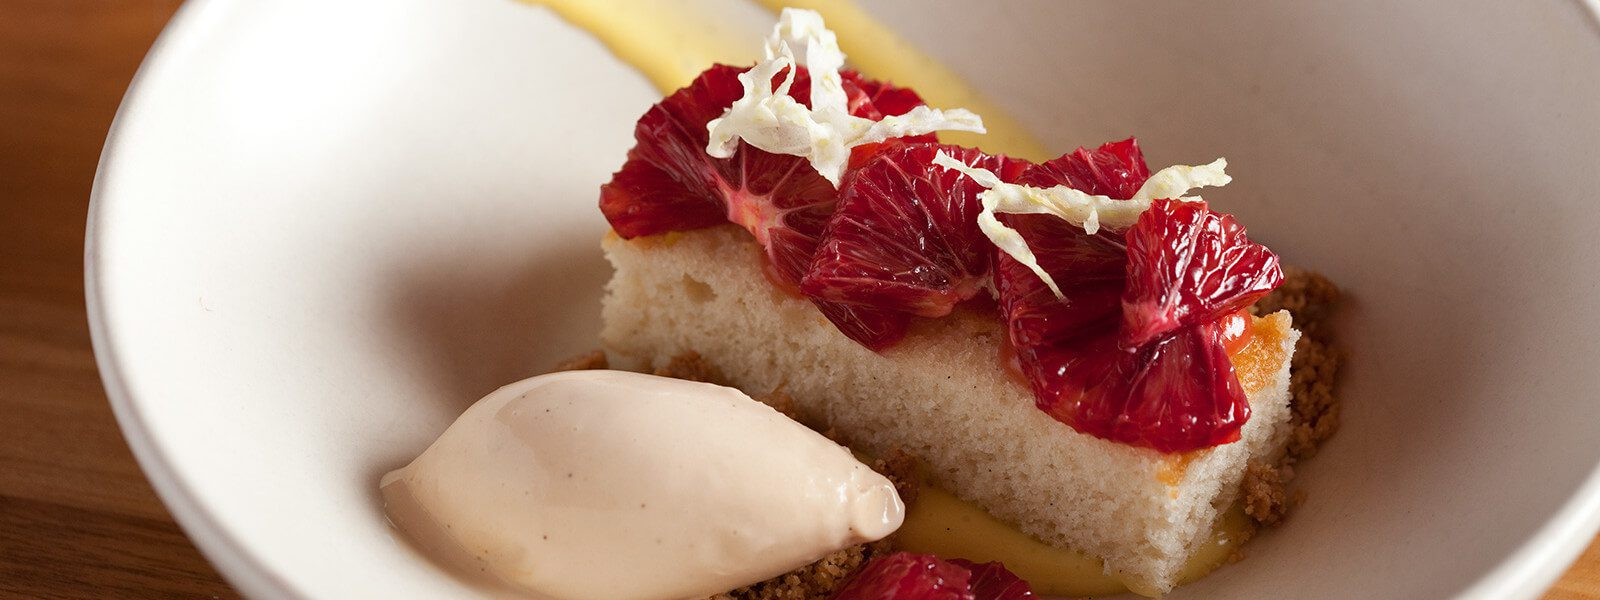 Sponge cake with blood orange and ice cream.